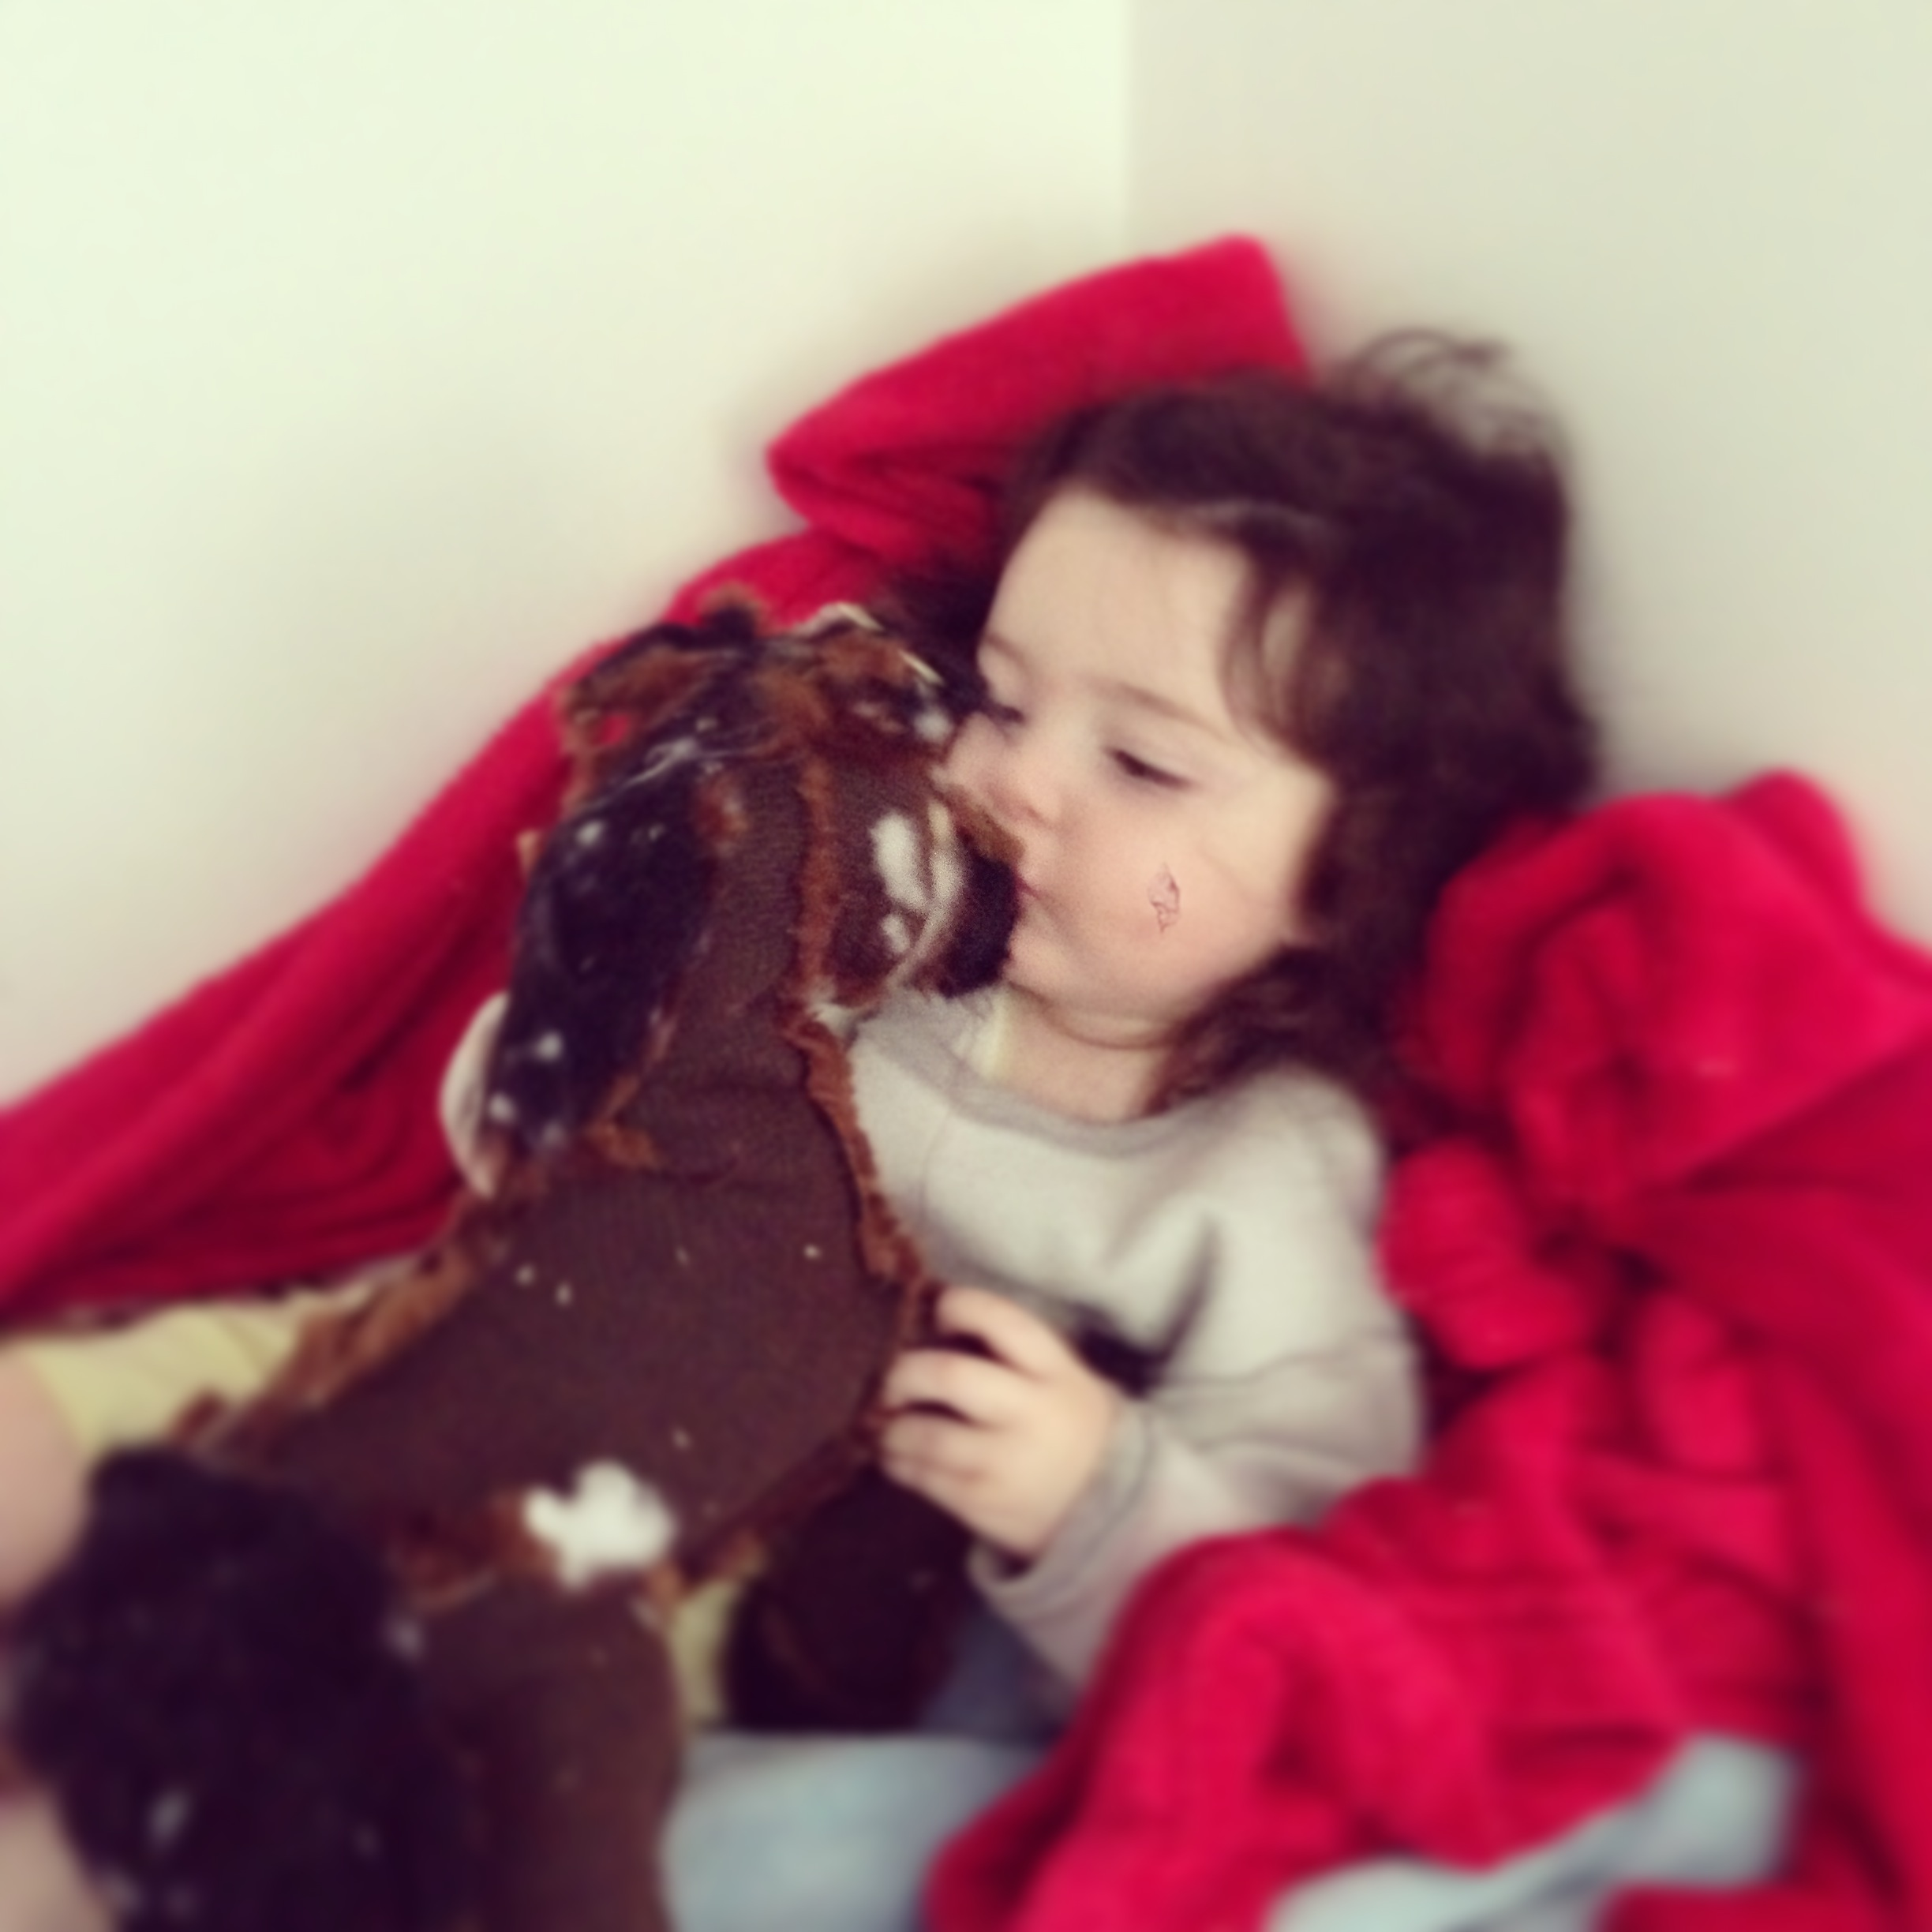 Lila gives her horsey a kiss